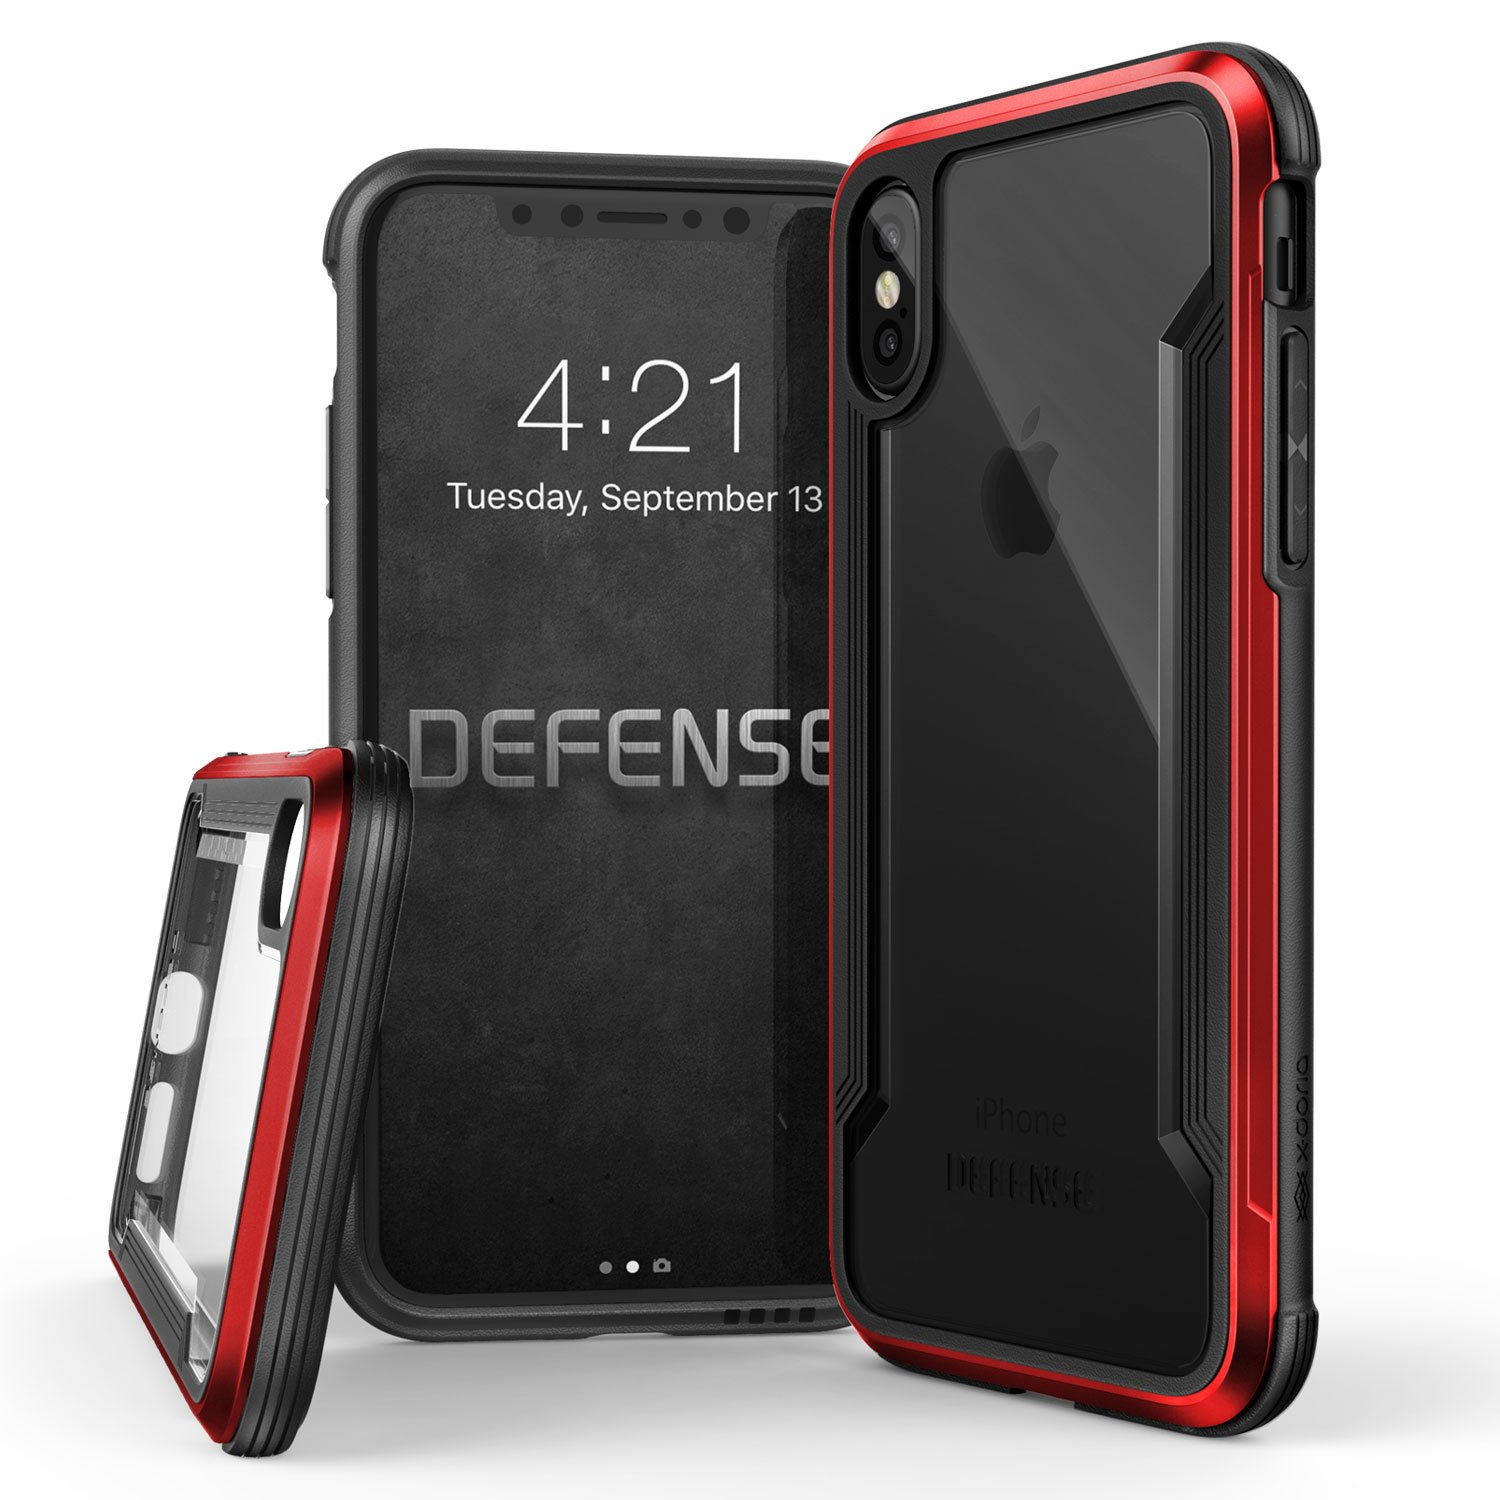 iPhone X, iPhone XS Case, X-Doria Defense Shield Series - Military Grade Drop Tested, Anodized Aluminum, TPU, and Polycarbonate Protective Case for Apple iPhone X, iPhone XS, [Red]